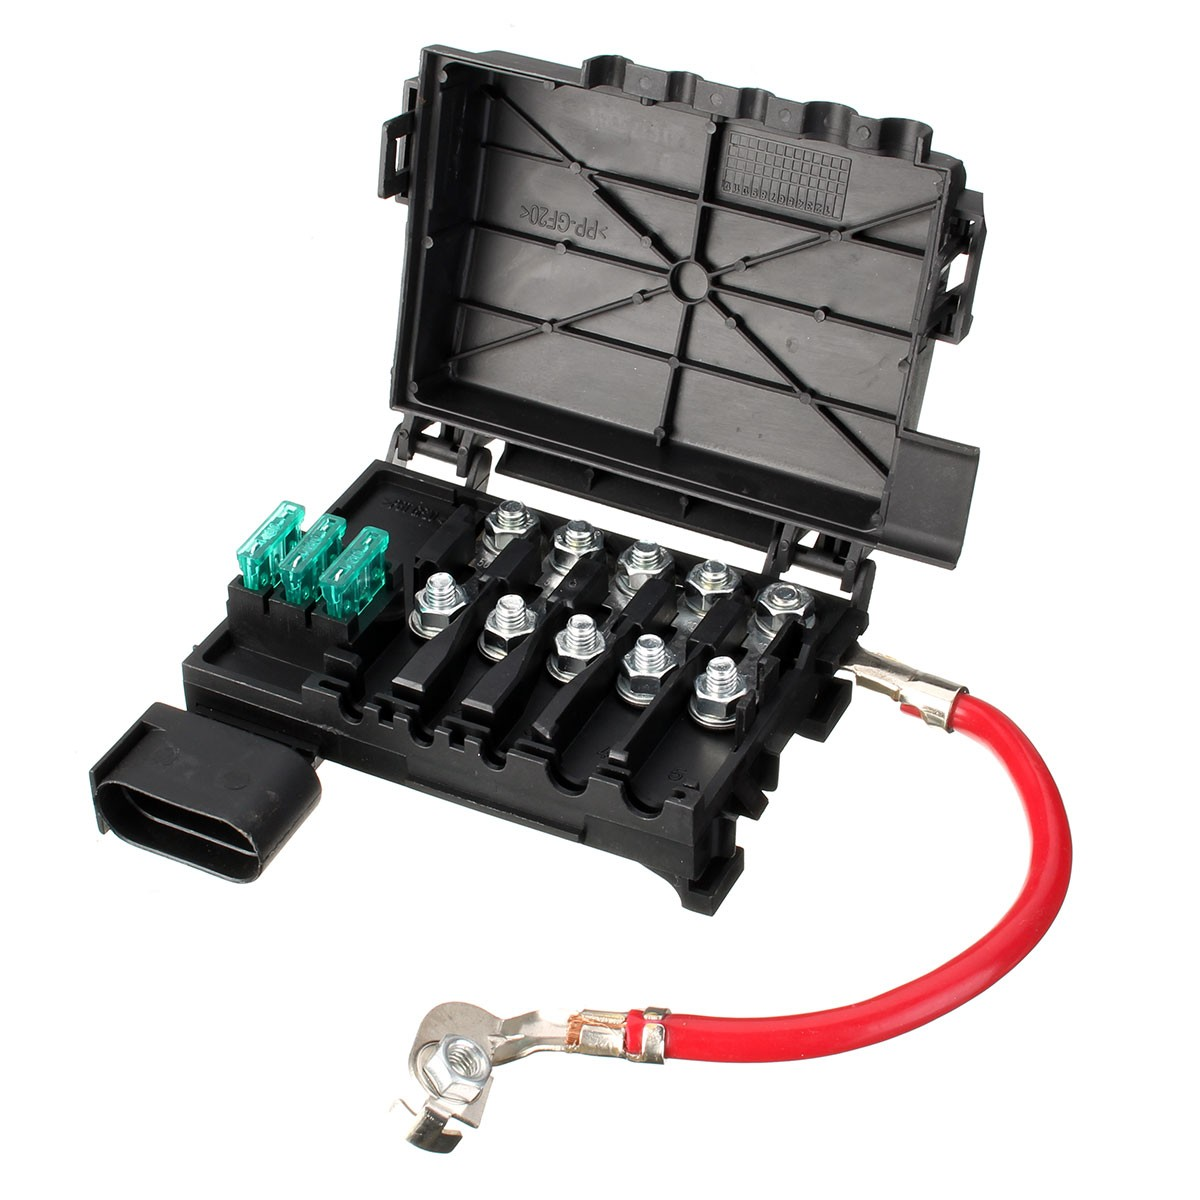 compare prices on ac fuse box online shopping buy low price ac new fuse box for vw beetle golf jetta 1j0937617d 1j0937550 1j0937550aa 1j0937550ab ac ad